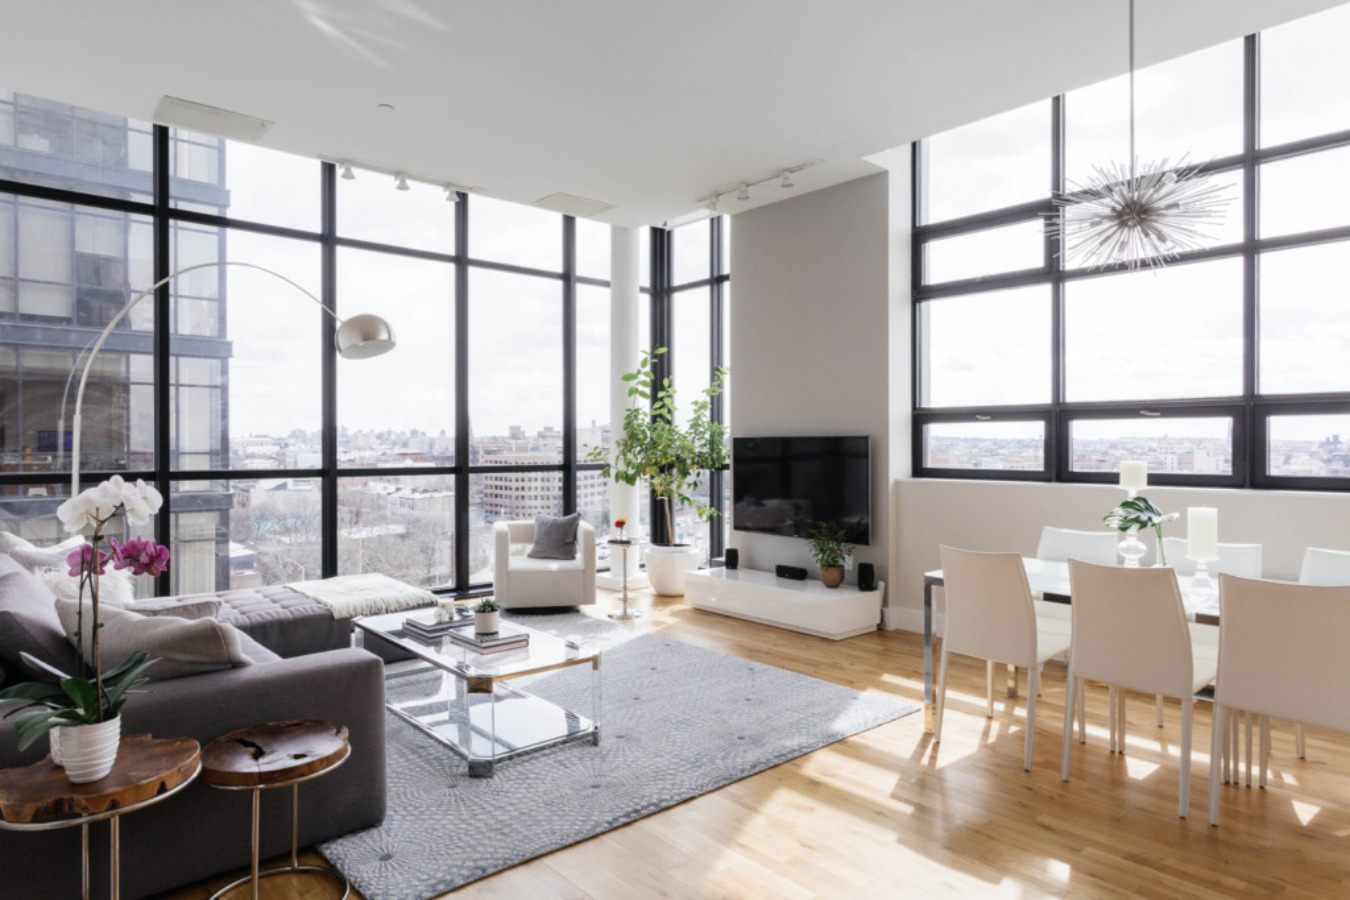 Un appartement brooklyn heights planete deco a homes world - Appartement new york brooklyn ...